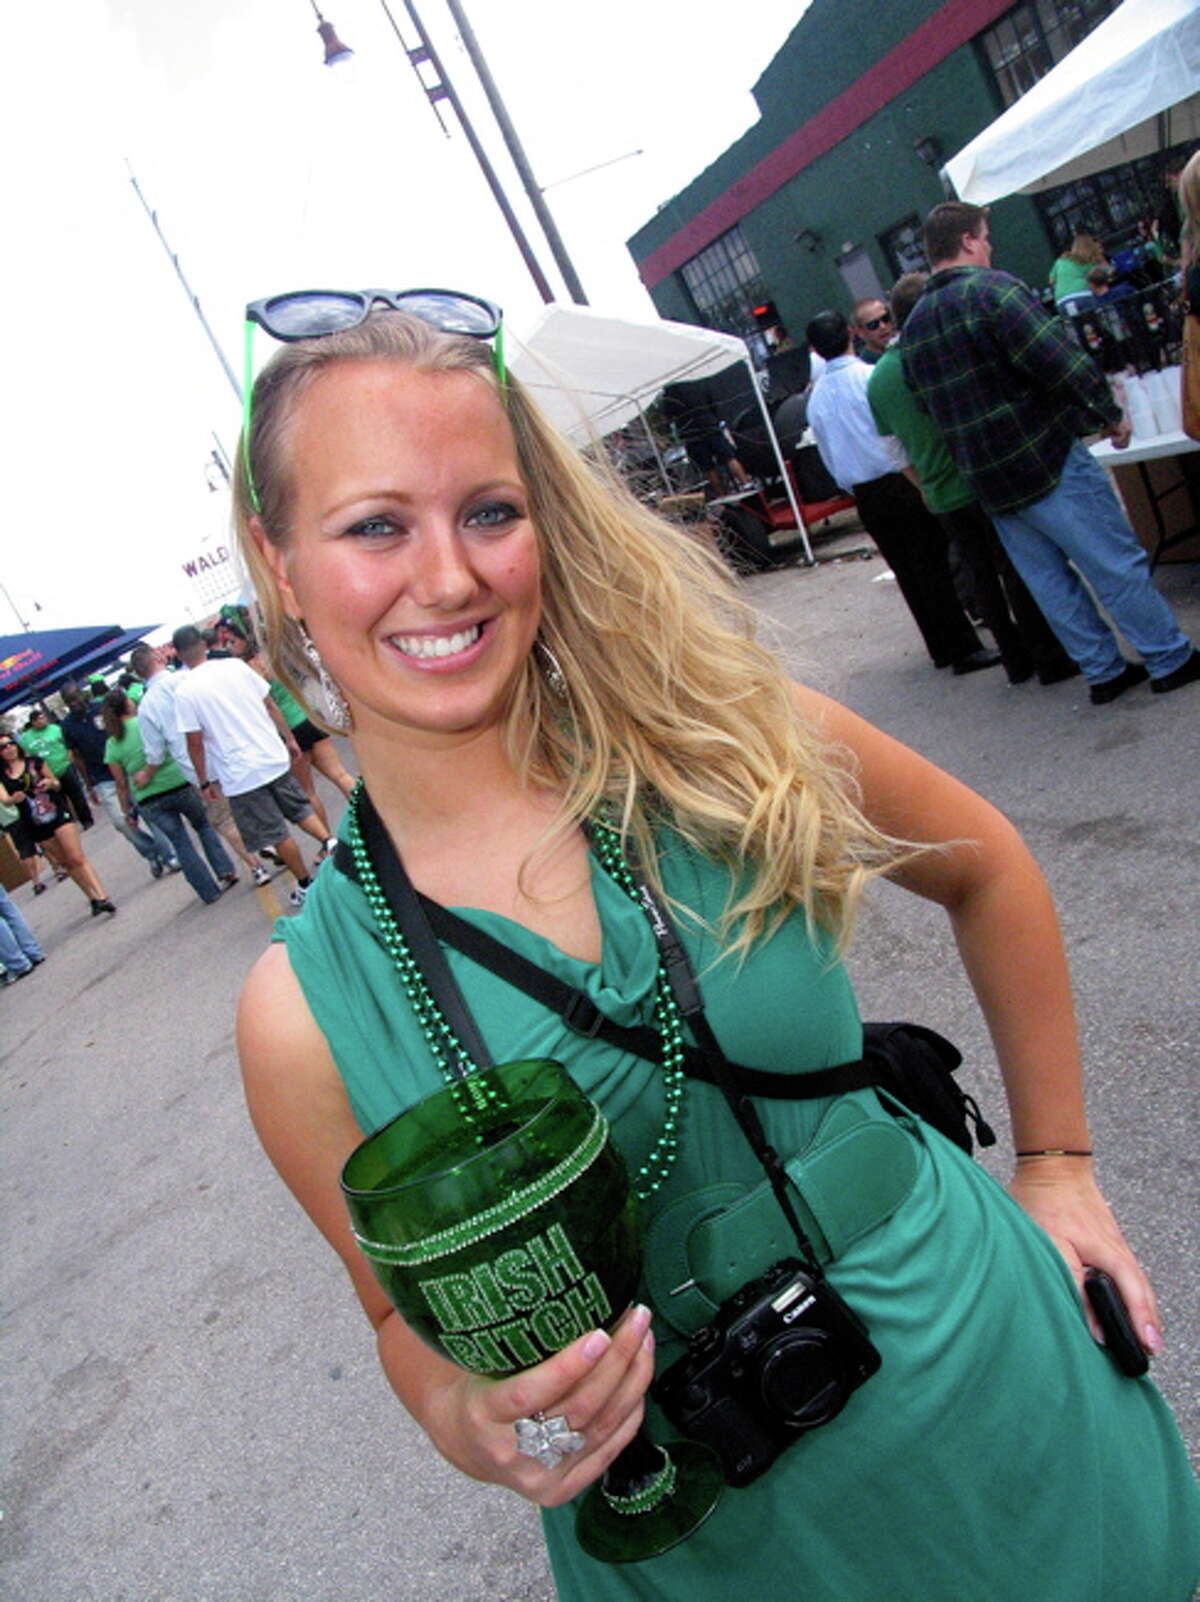 11th annualSt. Patrick's Day FestivalEvent features three stages of live music, costumes, bagpipers, food trucks and green beer.When:8 a.m. SaturdayWhere:Lucky's Pub, 801 St. EmanuelDetails:$10-$100;luckyspub.com